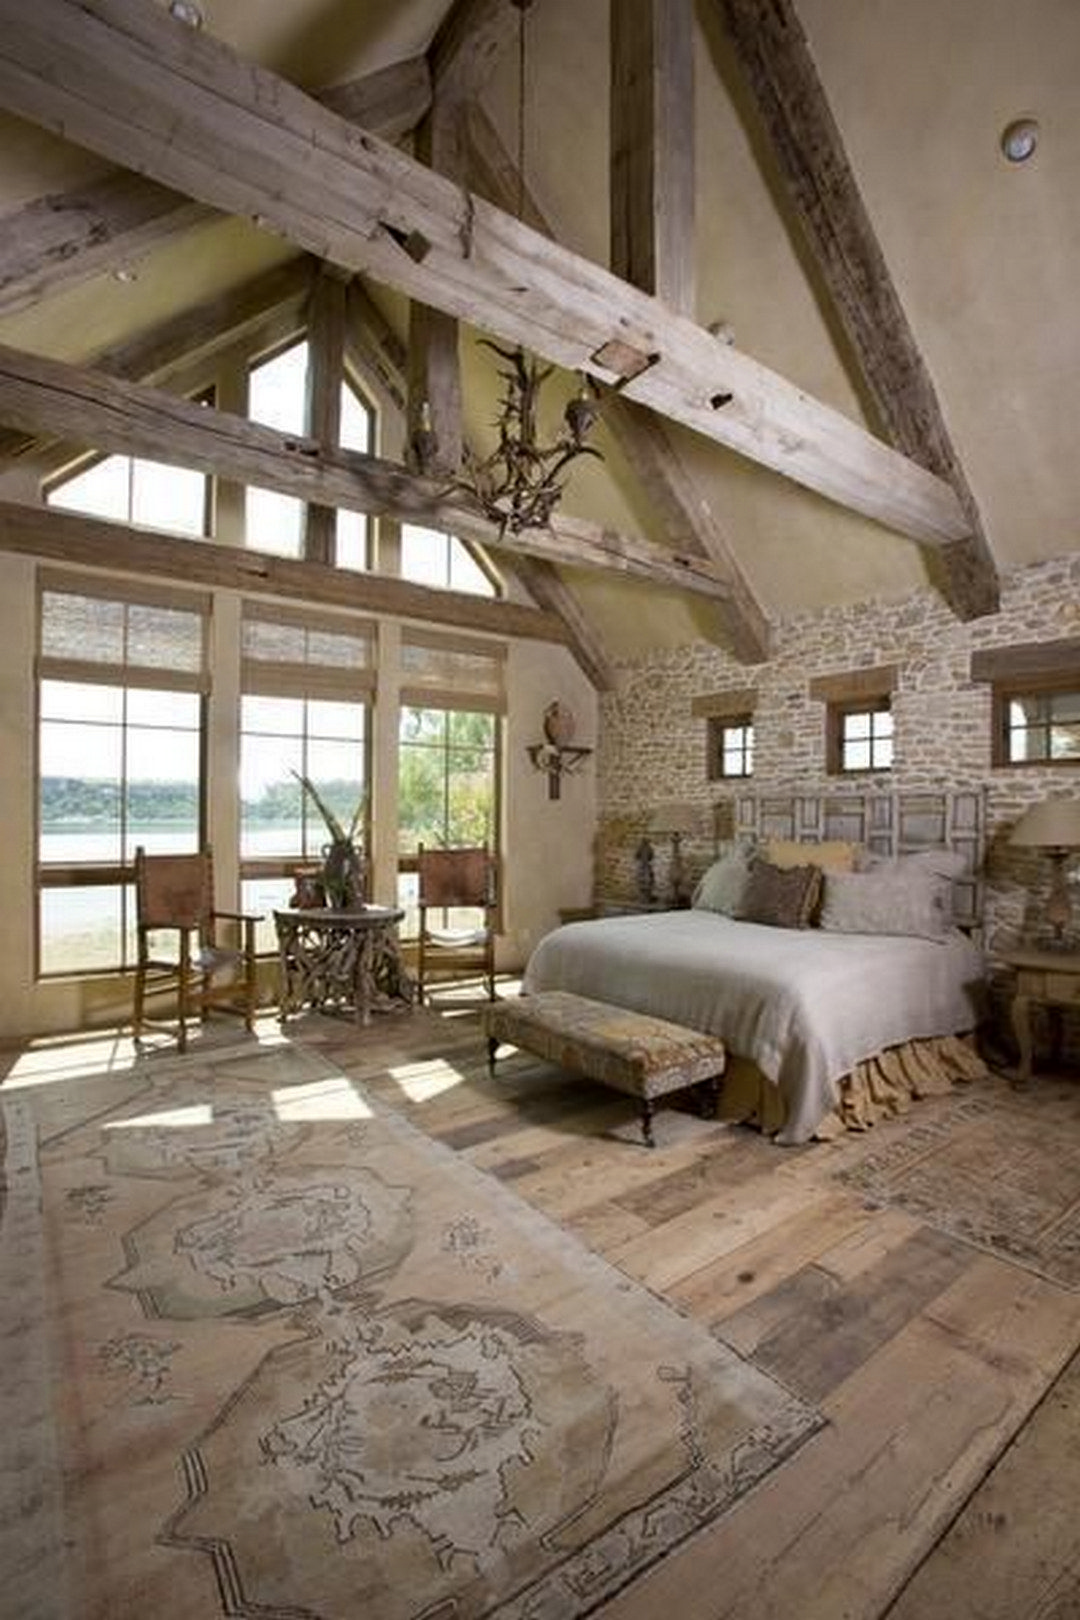 Awesome Barn Style Interior Design Idea (33) | Barn, Interiors and ...